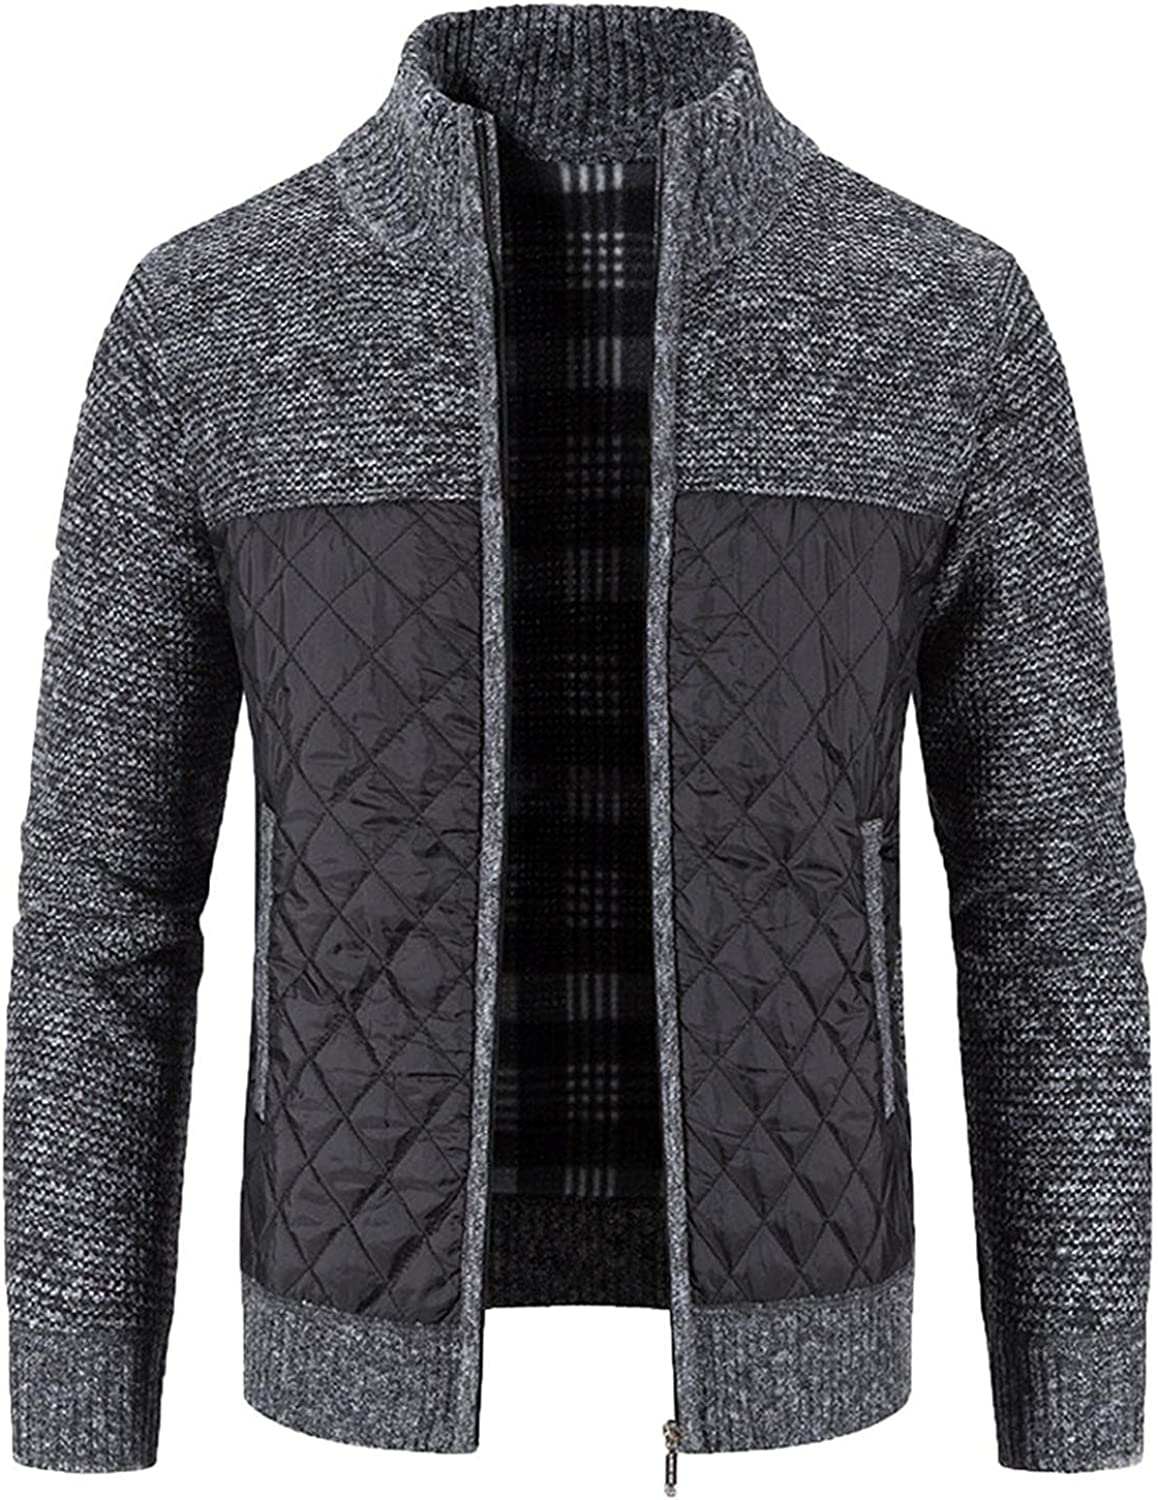 WUAI-Men Full Zip Cardigan Sweater Stand Collar Casual Slim Fit Cotton Ribbed Cable Knit Lightweight Warm Knitwear Jacket